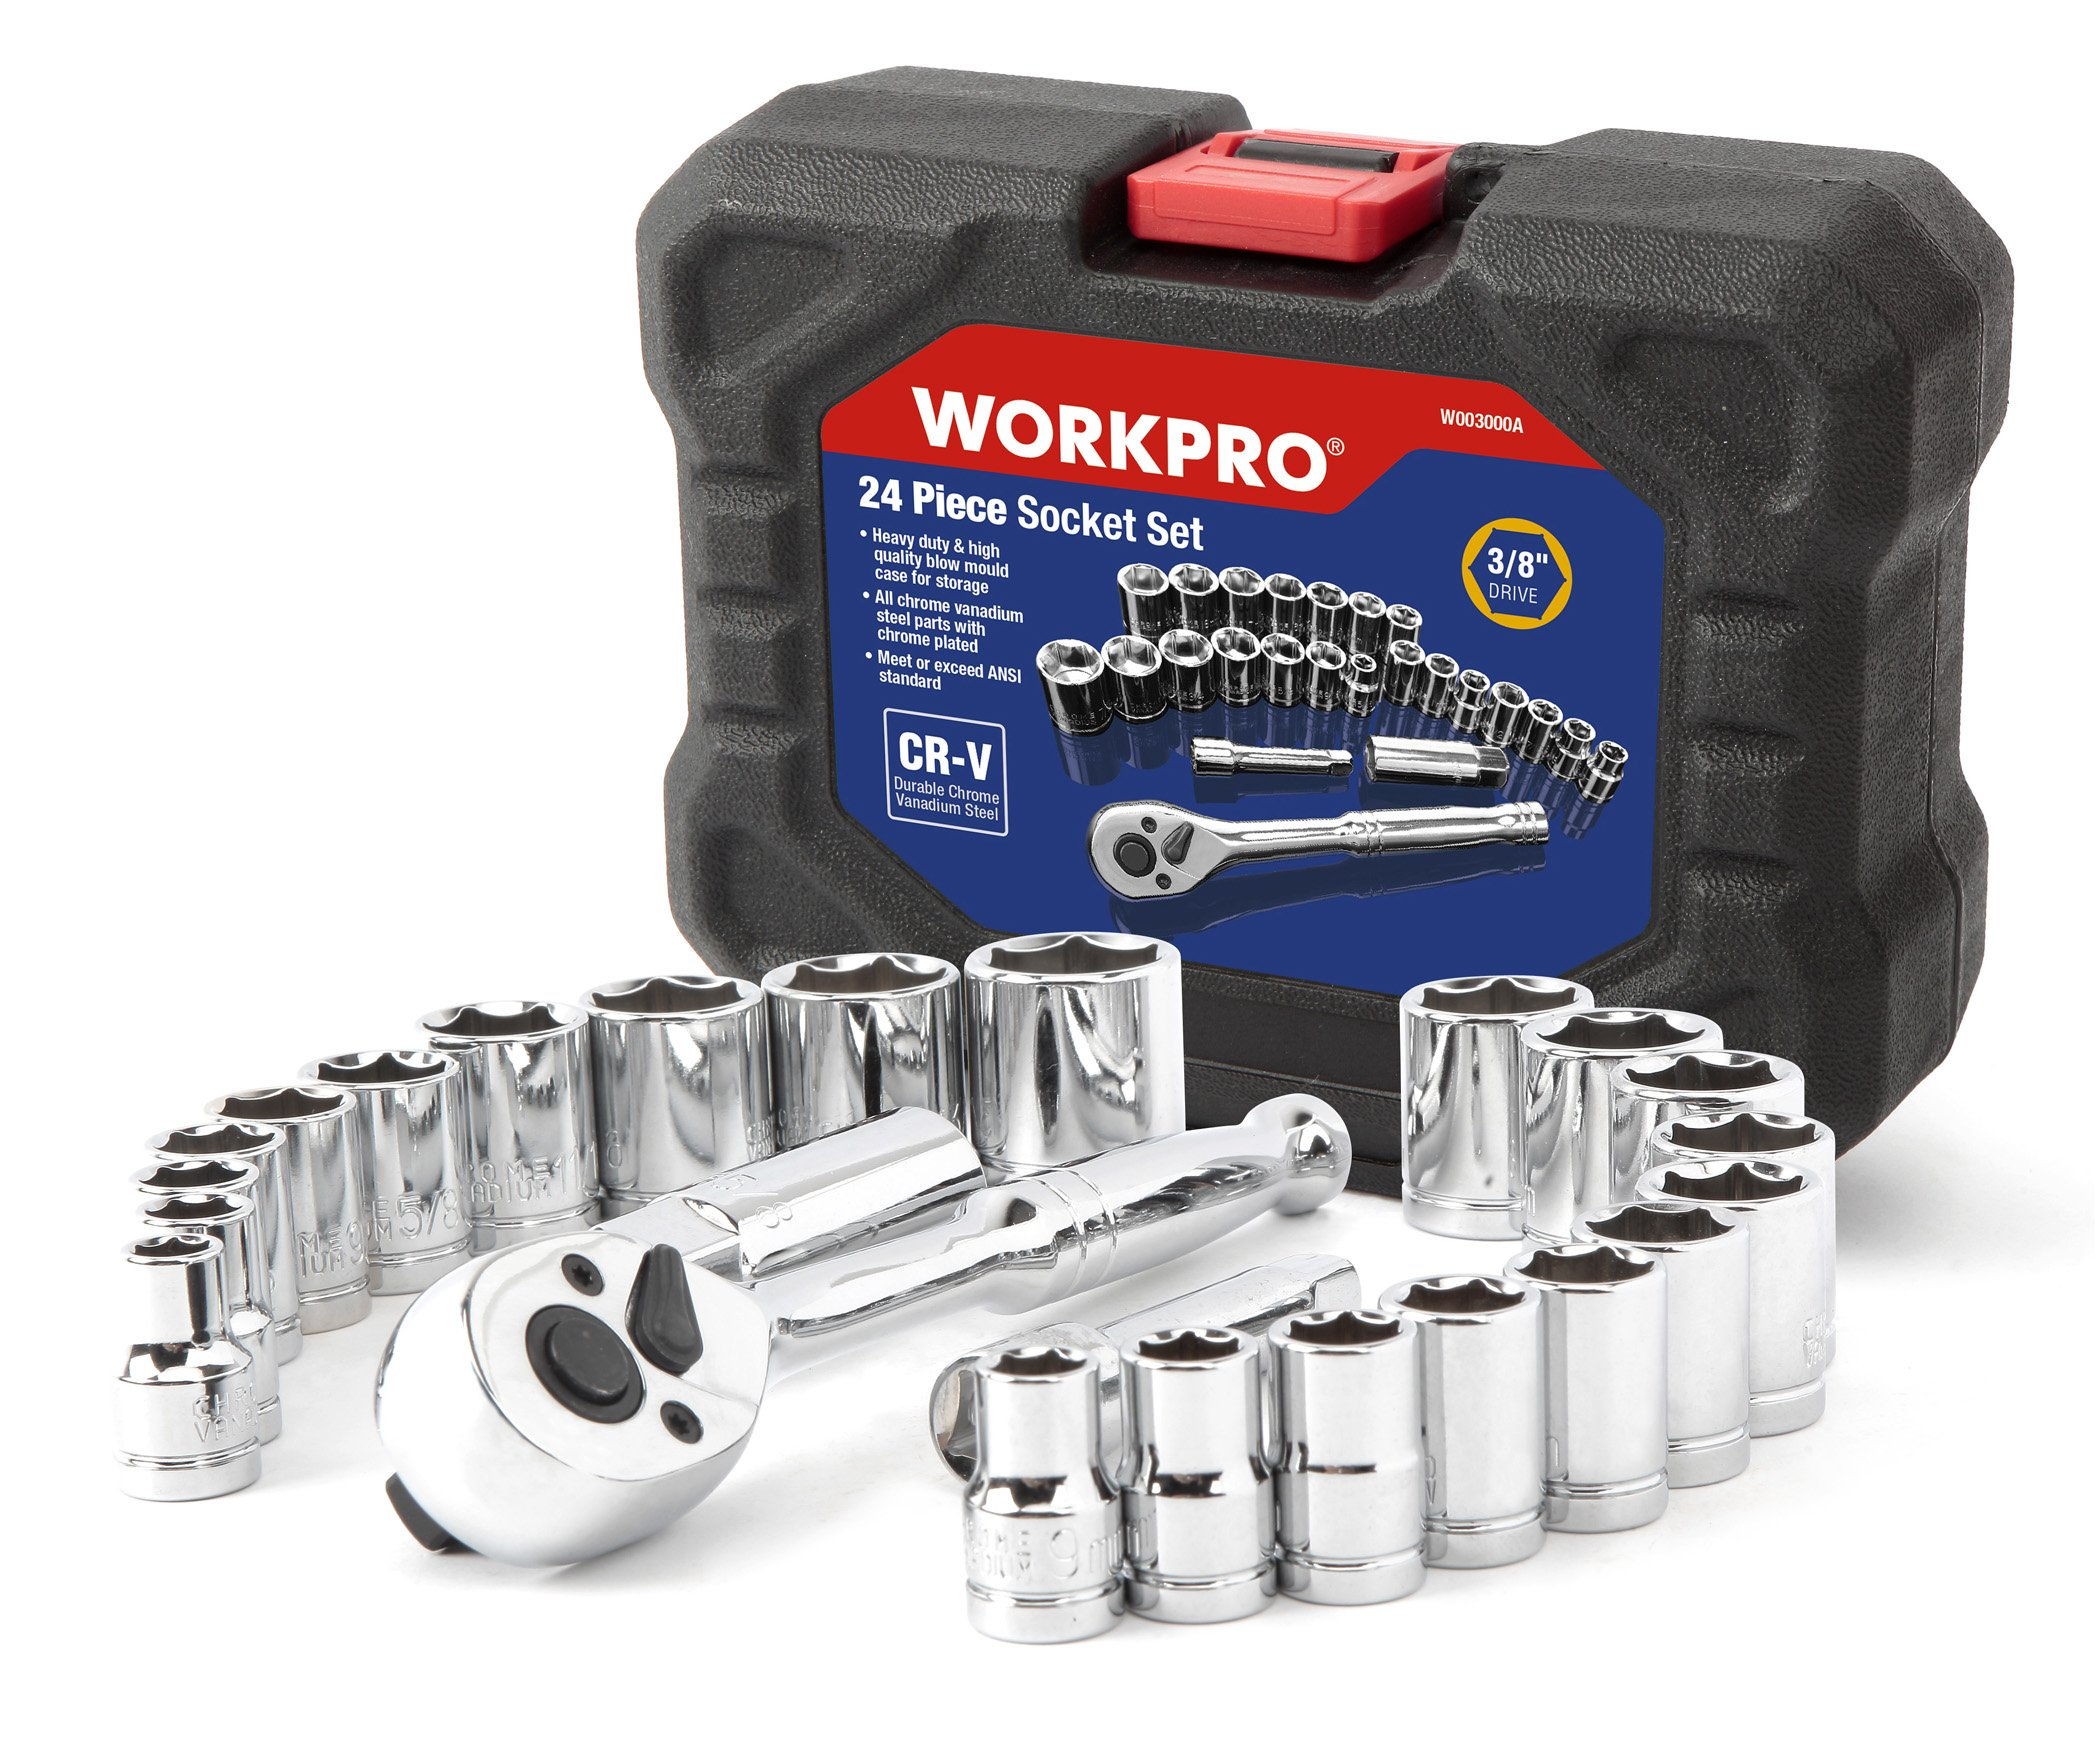 WORKPRO 24-piece Compact Drive Sockets Set 3/8'' Ratchet with Blow Molded Case